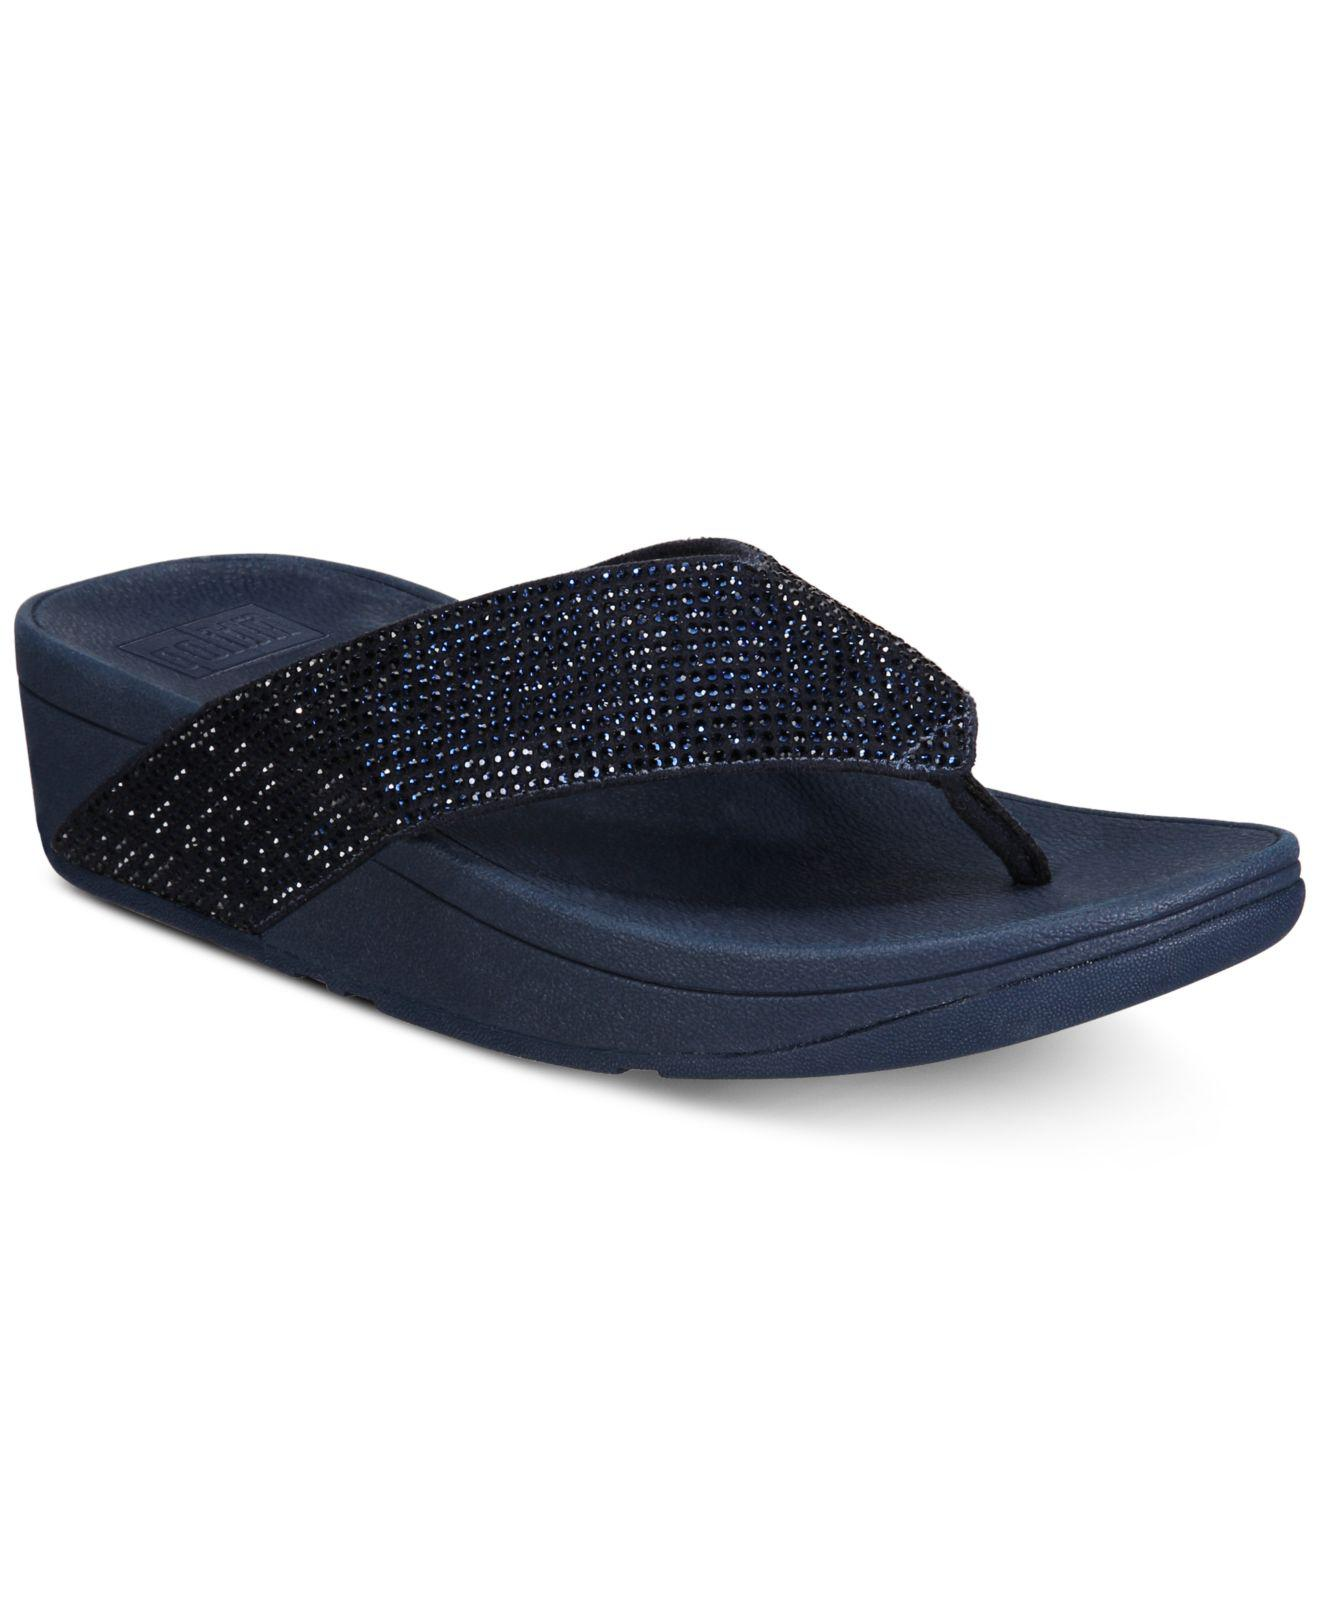 393970ad6ca1d Lyst - Fitflop Ritzy Toe-thong Sandals in Blue